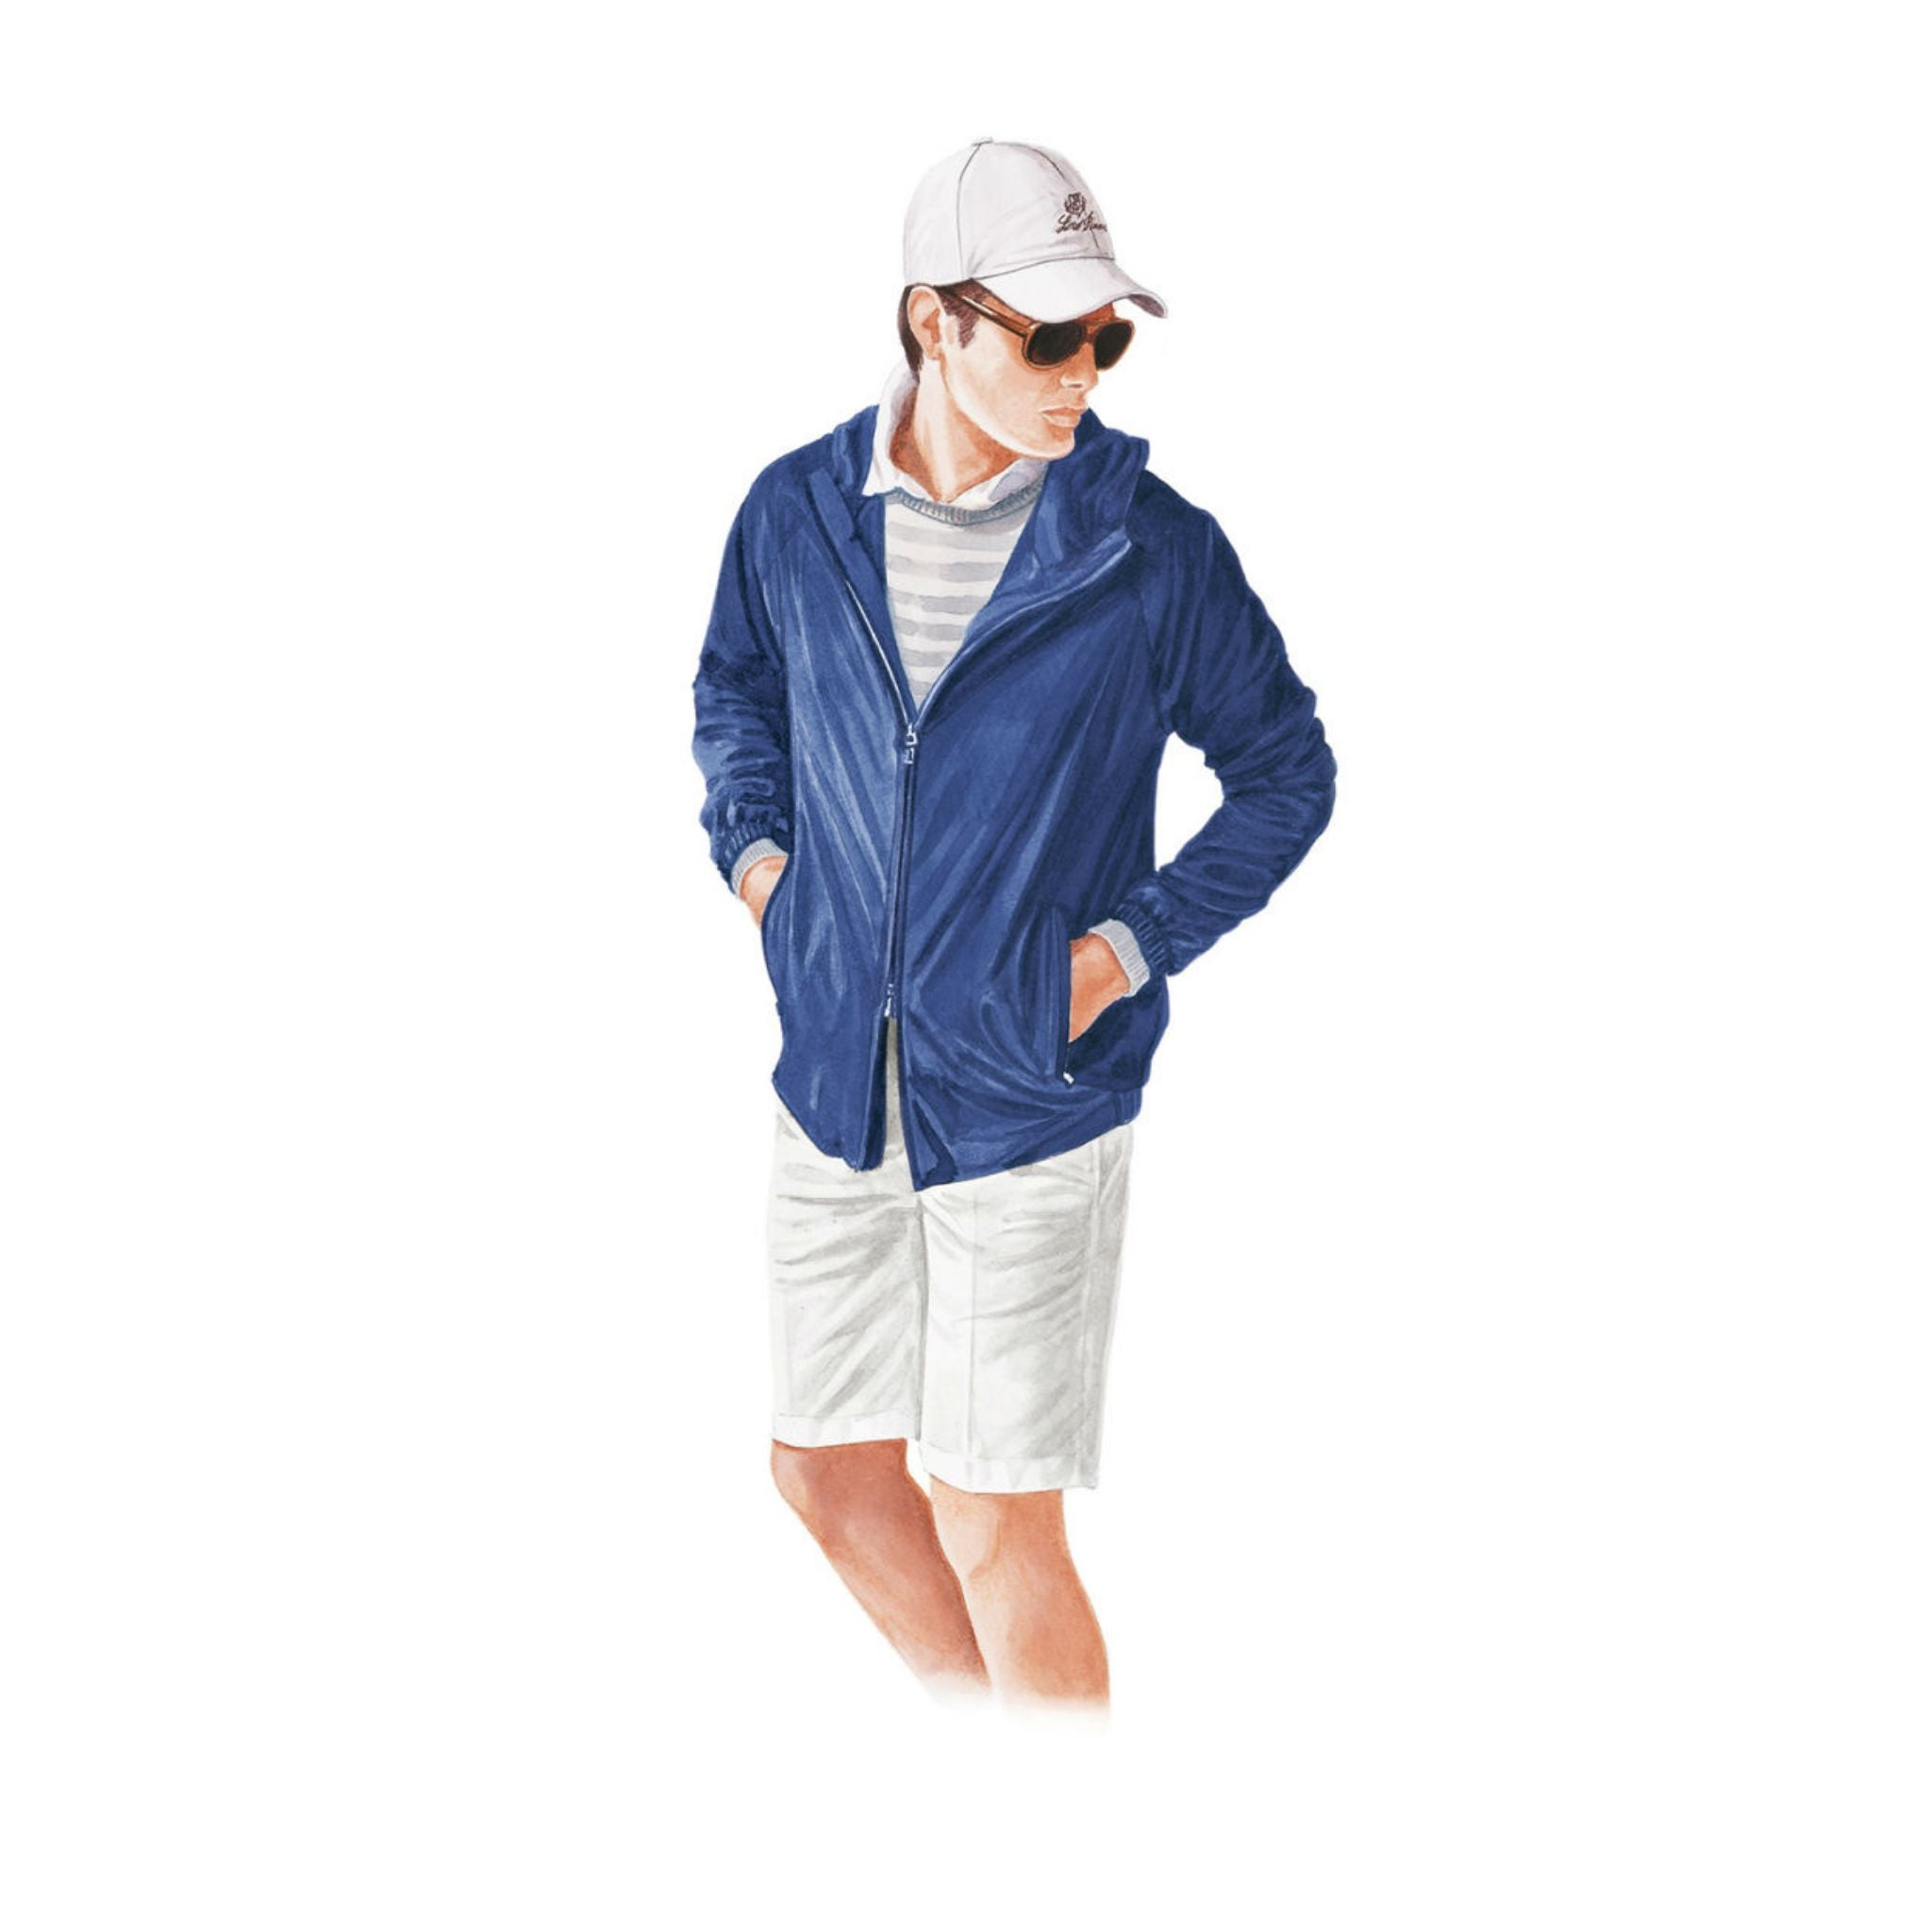 Loro Piana spring and summer 2016 shorts with blouson